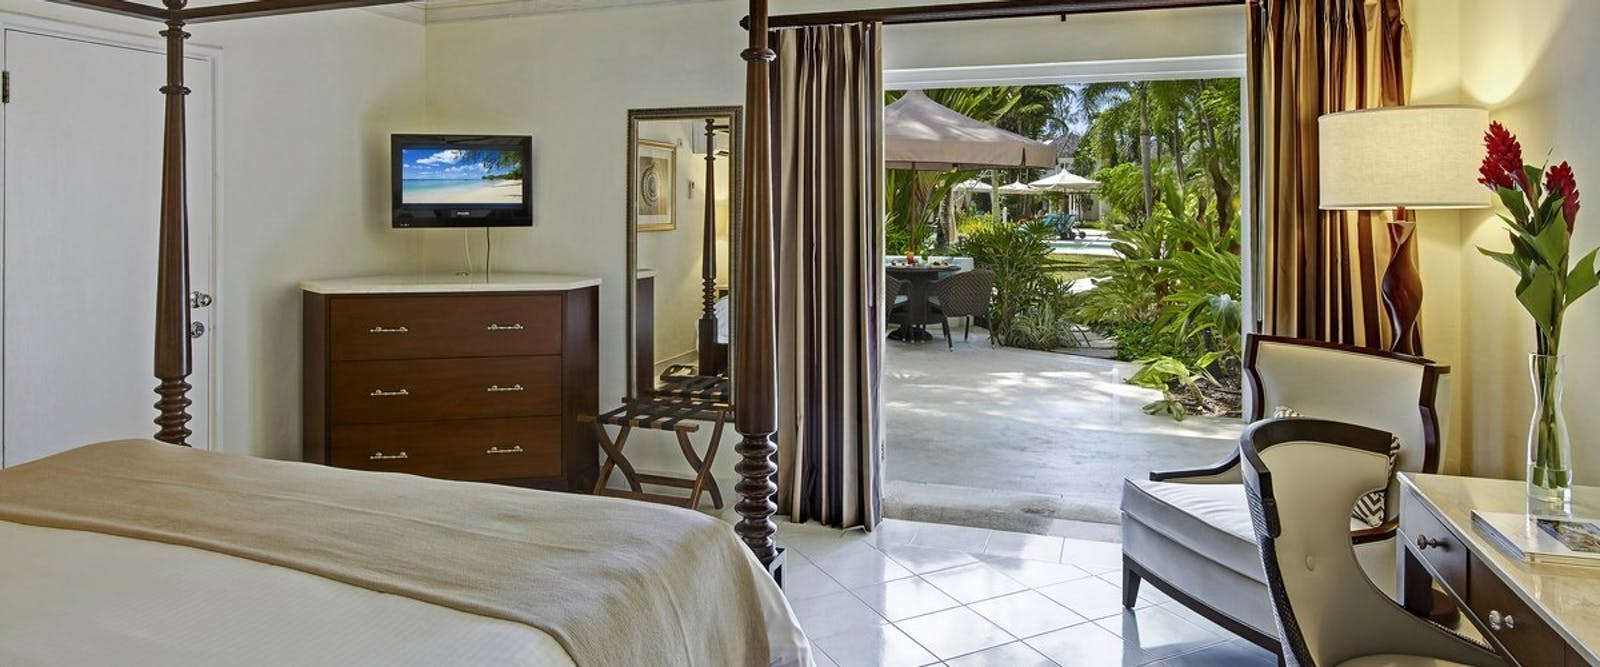 Pool Garden View Room at Colony Club by Elegant Hotels, Barbados, Caribbean